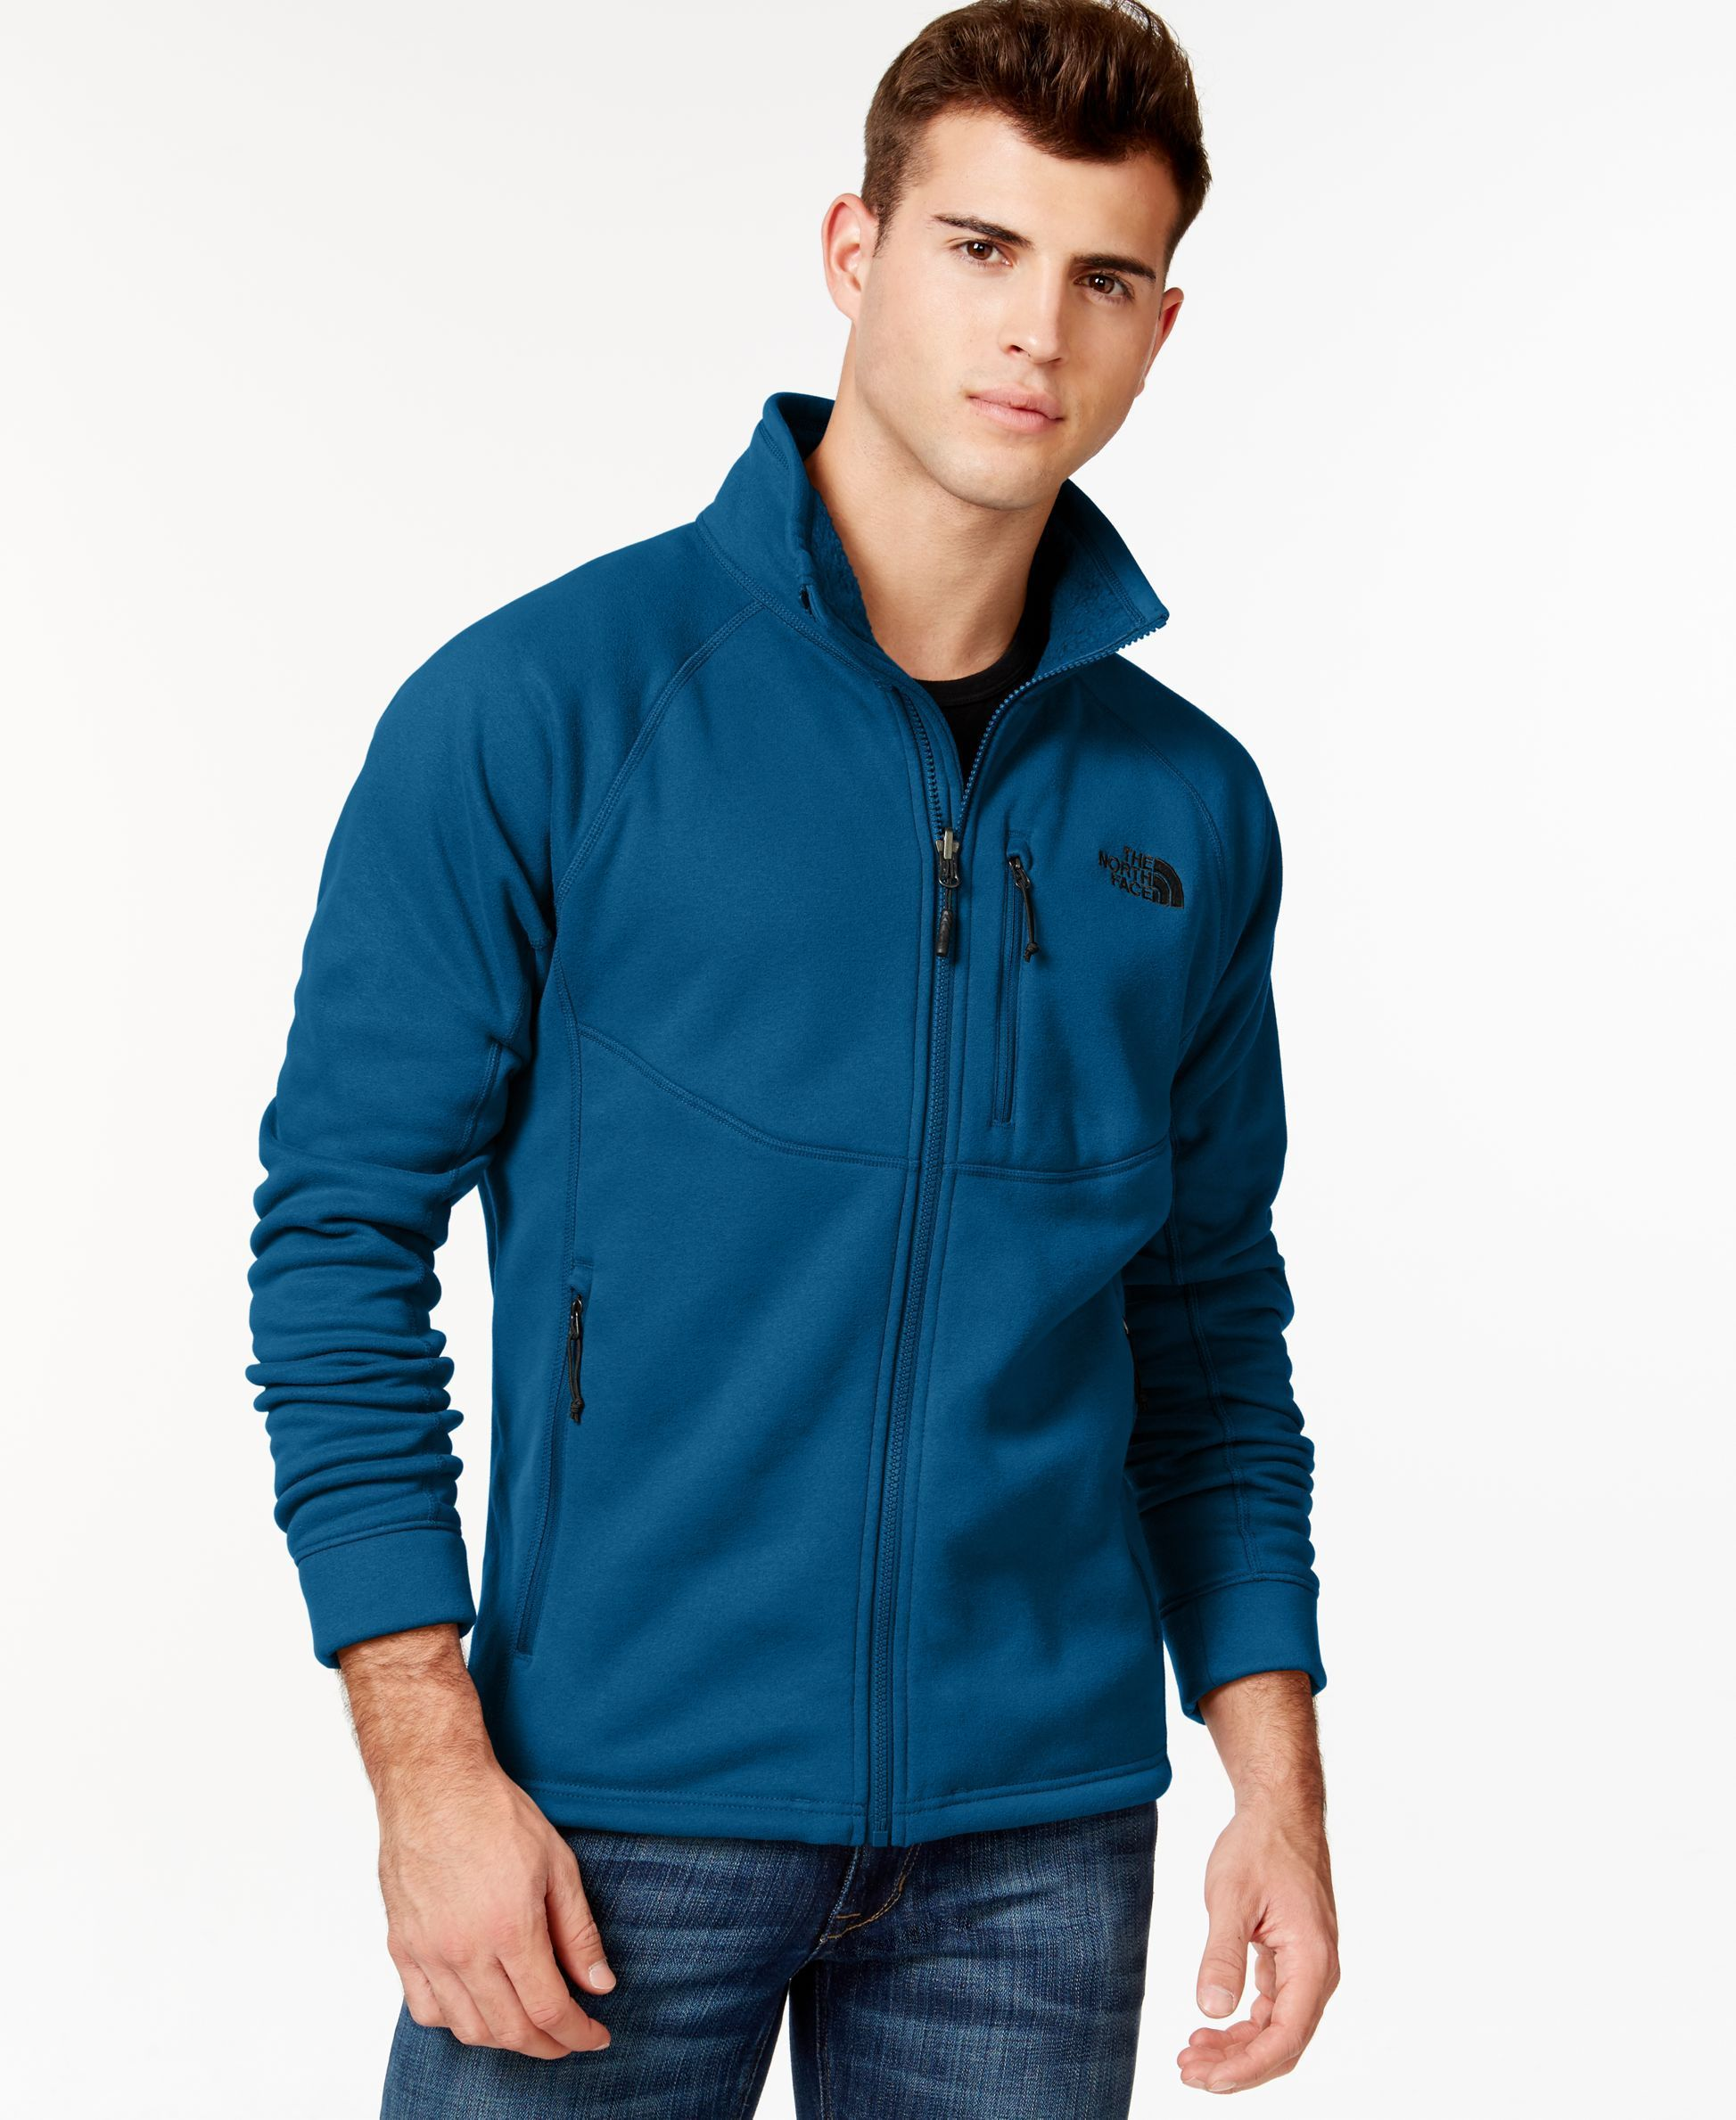 bff36aefec94 The North Face Timber Full-Zip Fleece Jacket